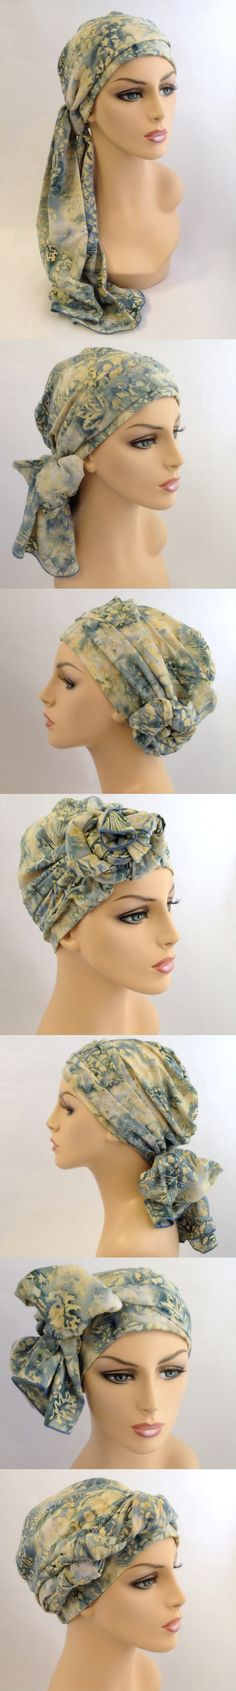 Turban & Scarf set easily ties in dozens of styles.  Feel beautiful during #chemo